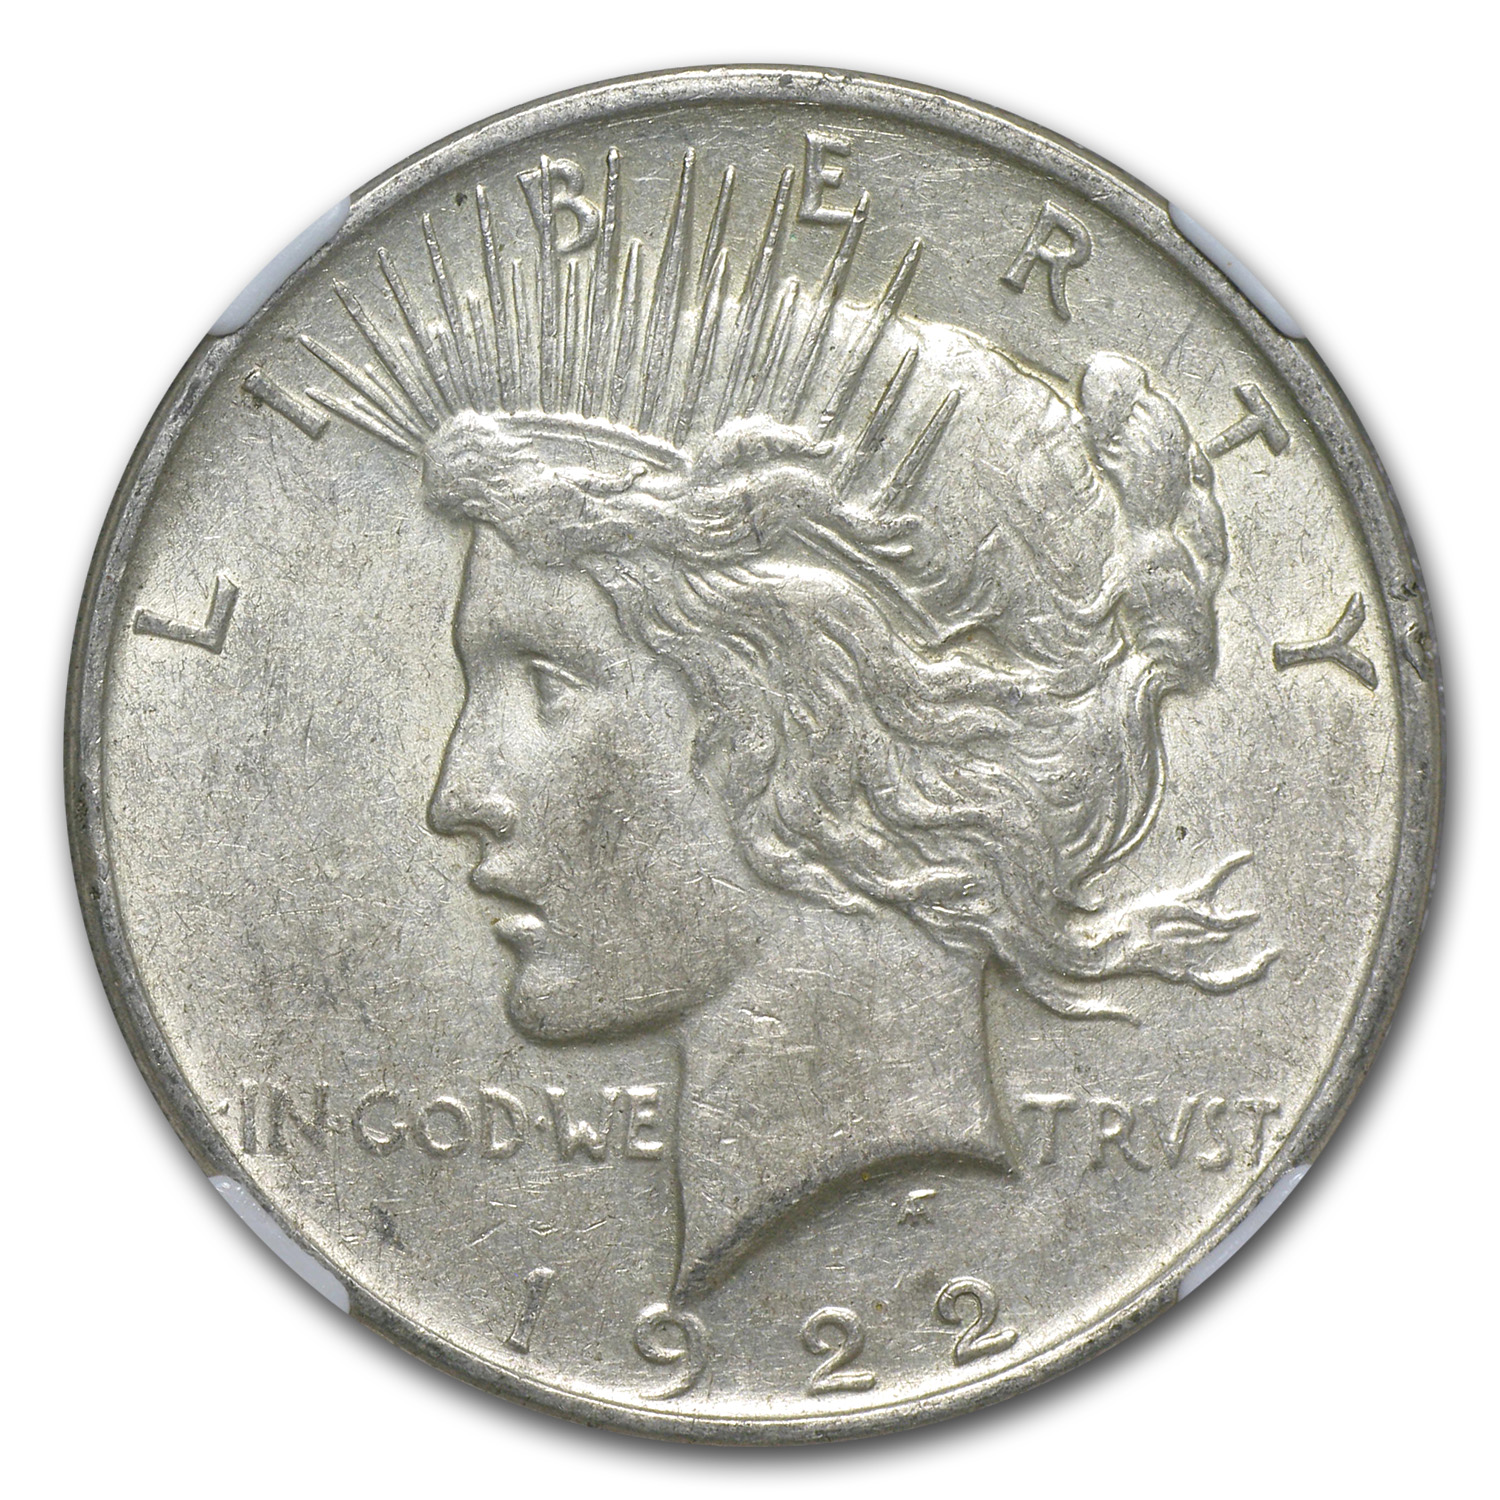 1922-D Peace Dollar AU-53 NGC 45 Degree CW Rotated Rev Error